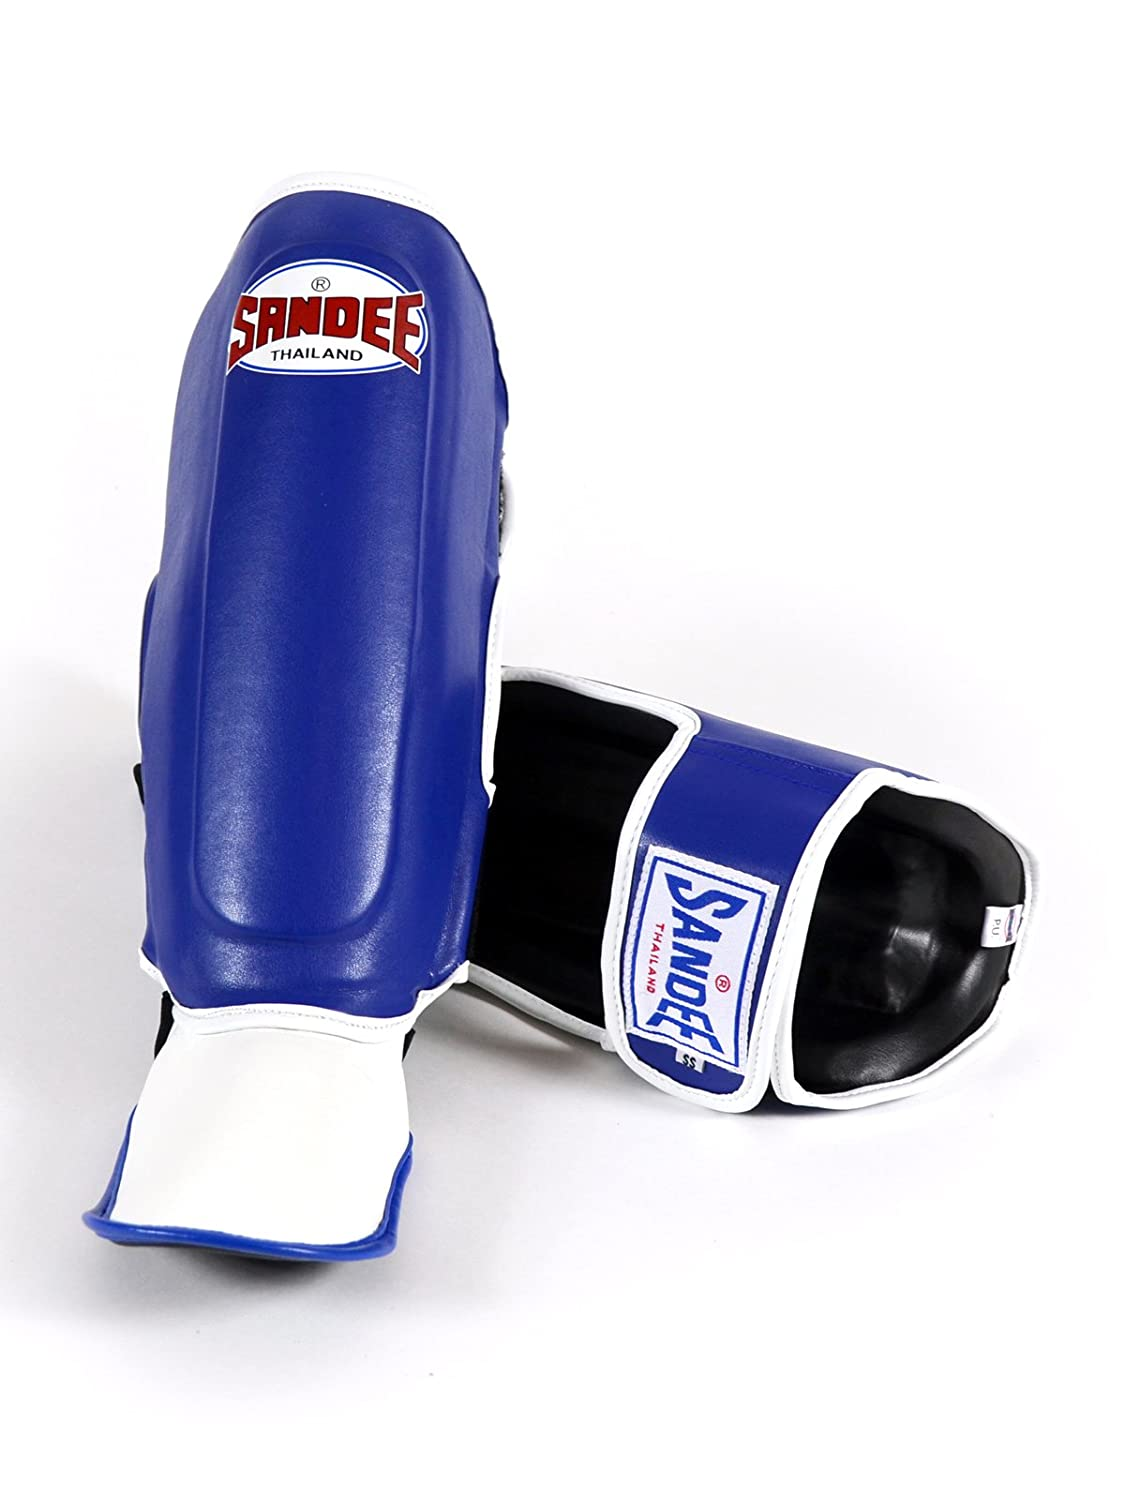 Sandee Authentic Synthetic Leather Boot Shinguard